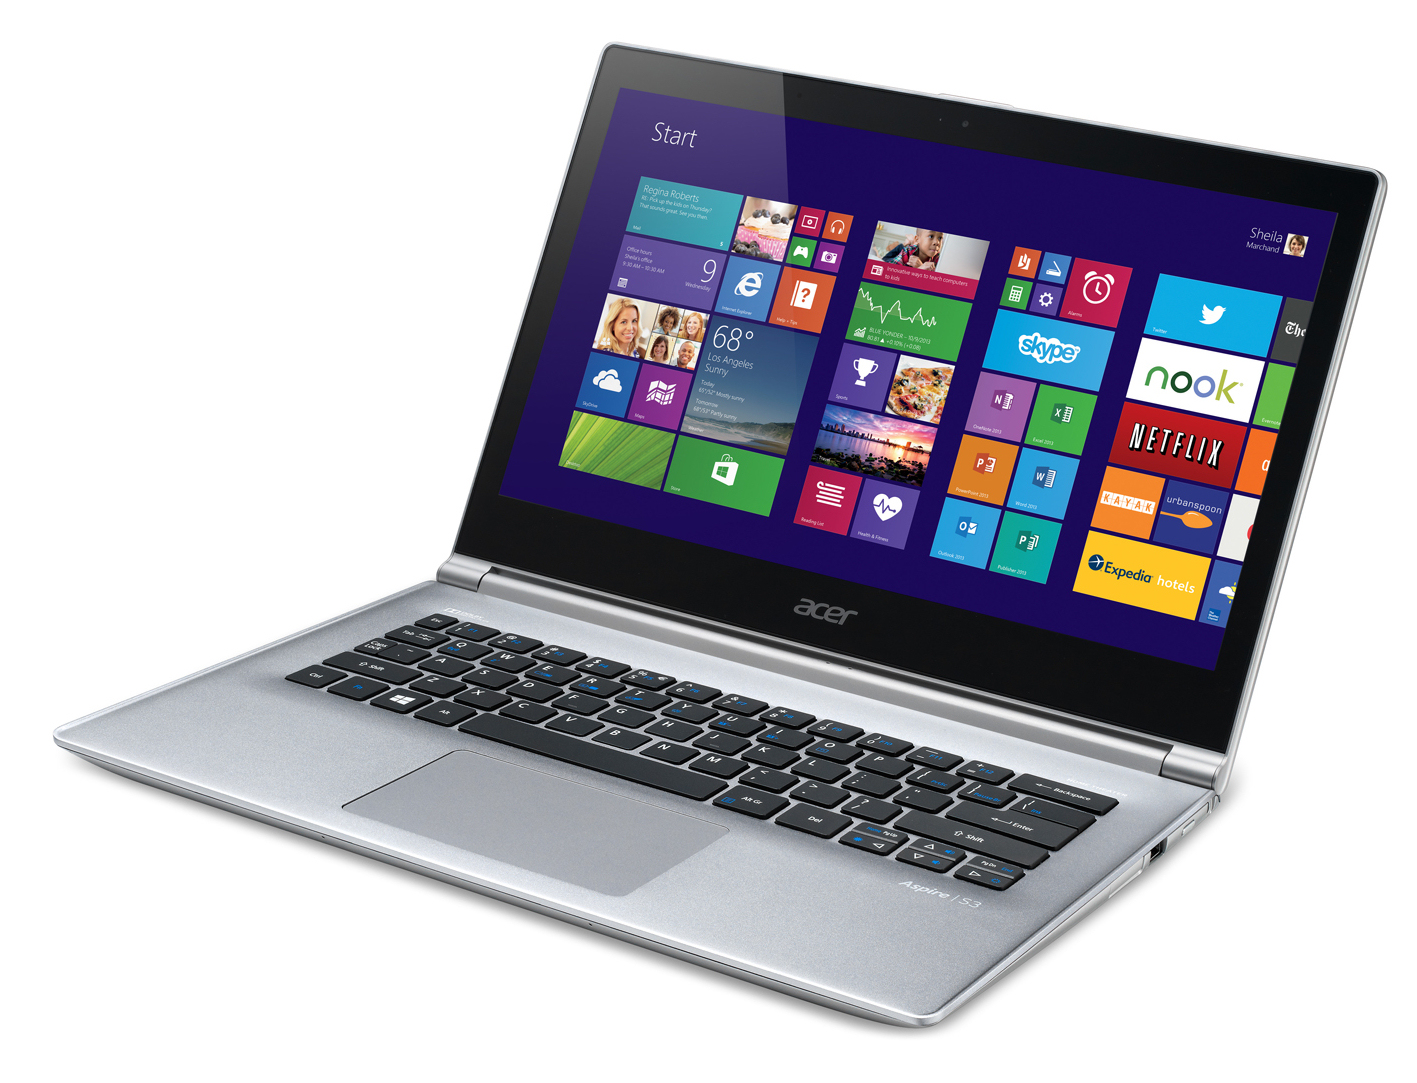 Acer Aspire S3-392 Intel Bluetooth Windows 8 X64